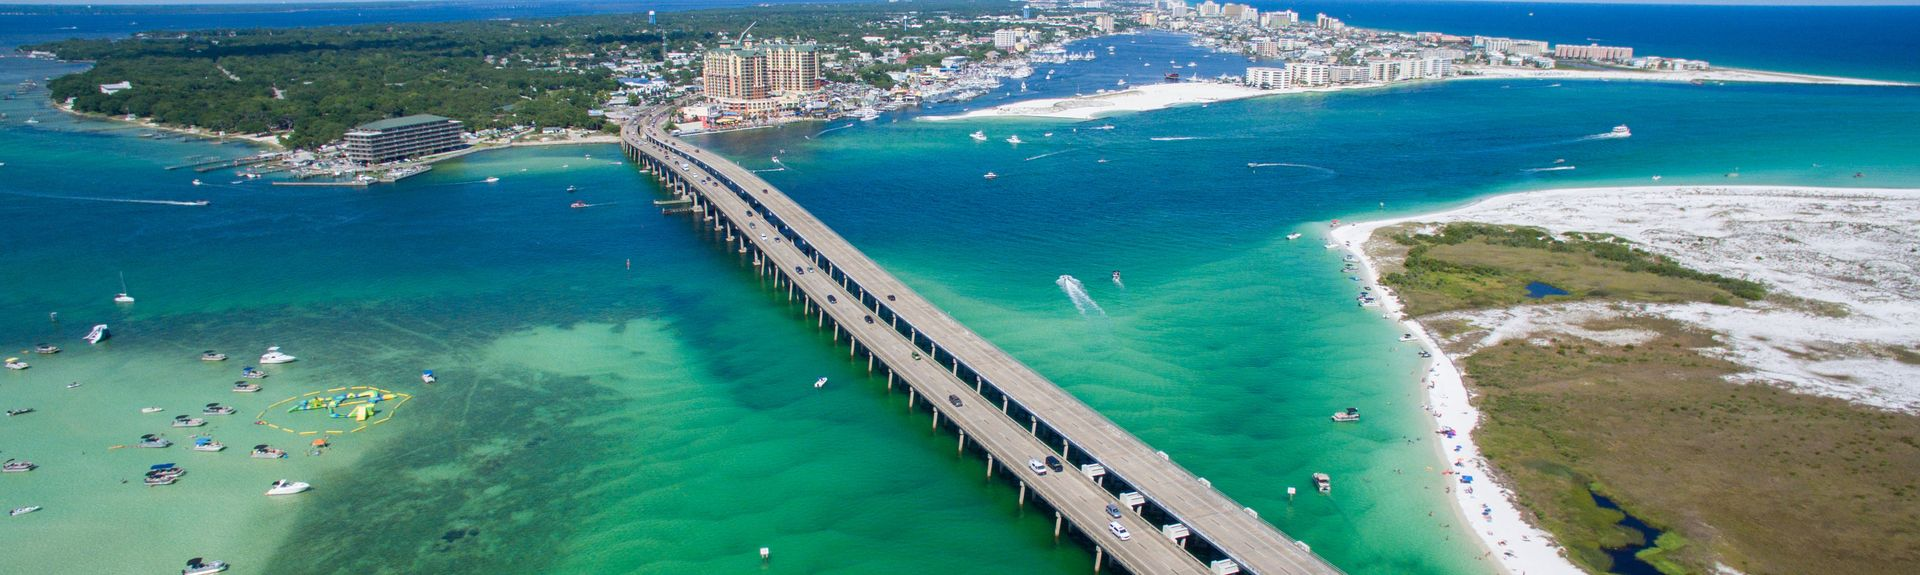 Destin, Florida, United States of America